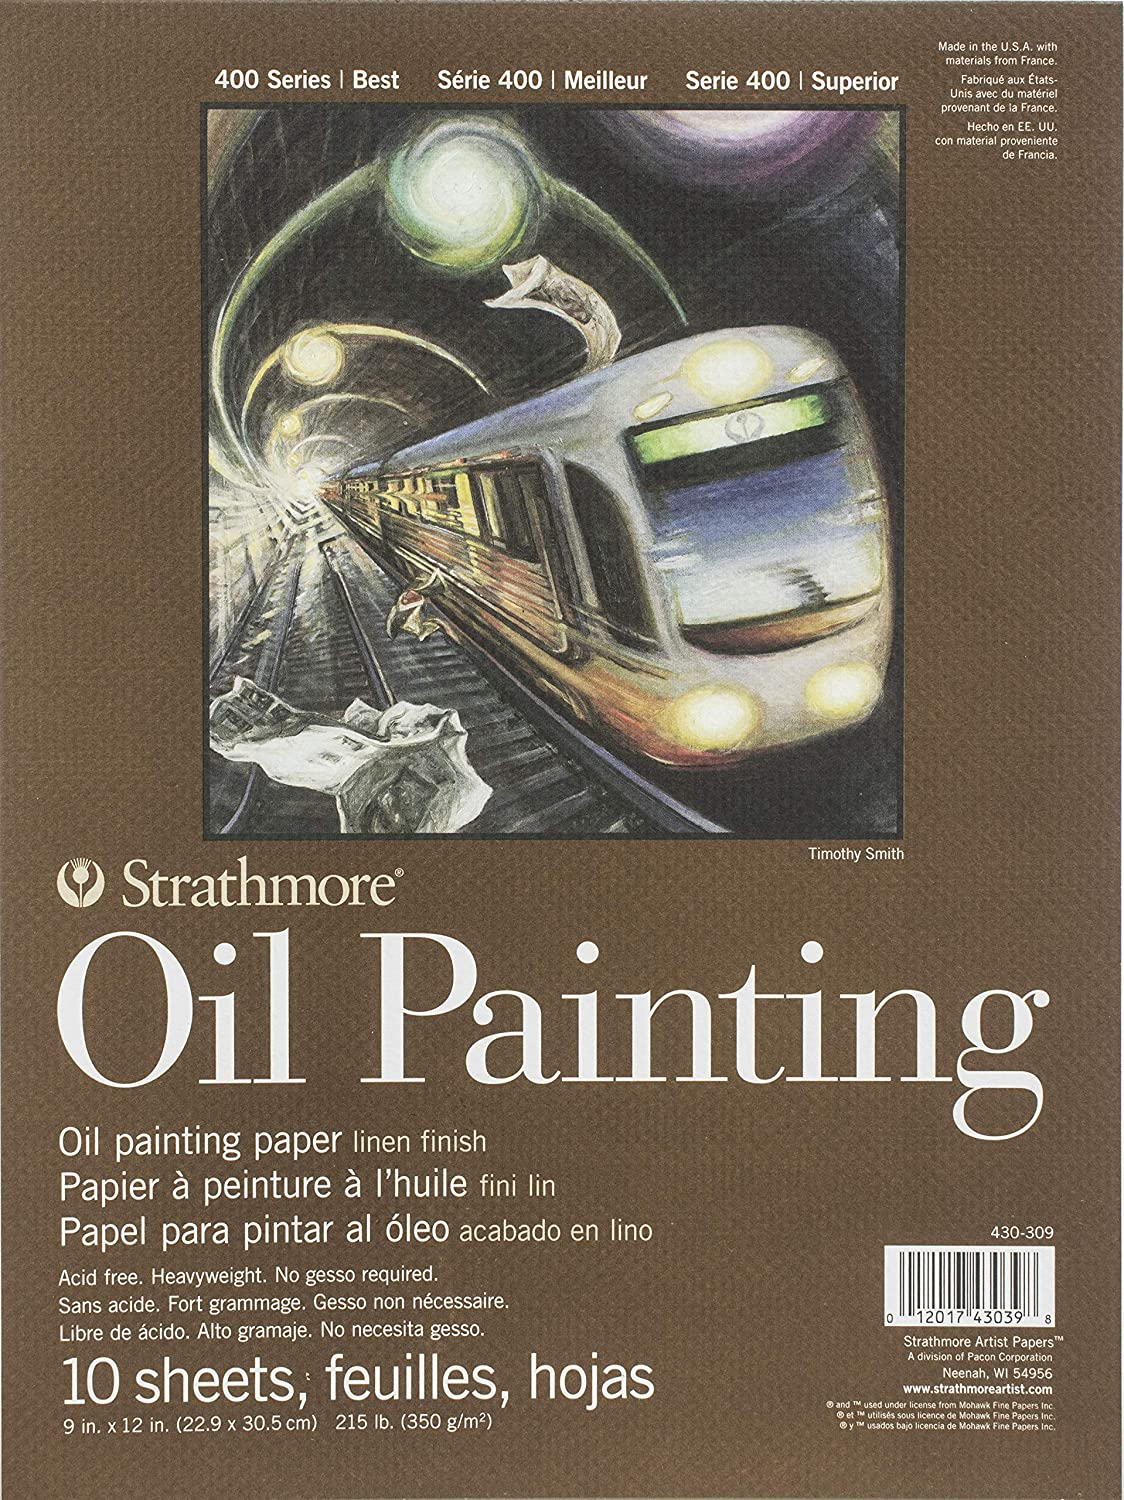 10 Sheets per Pad 400 Series Oil Painting Pad 9 x 12 Glue Bound